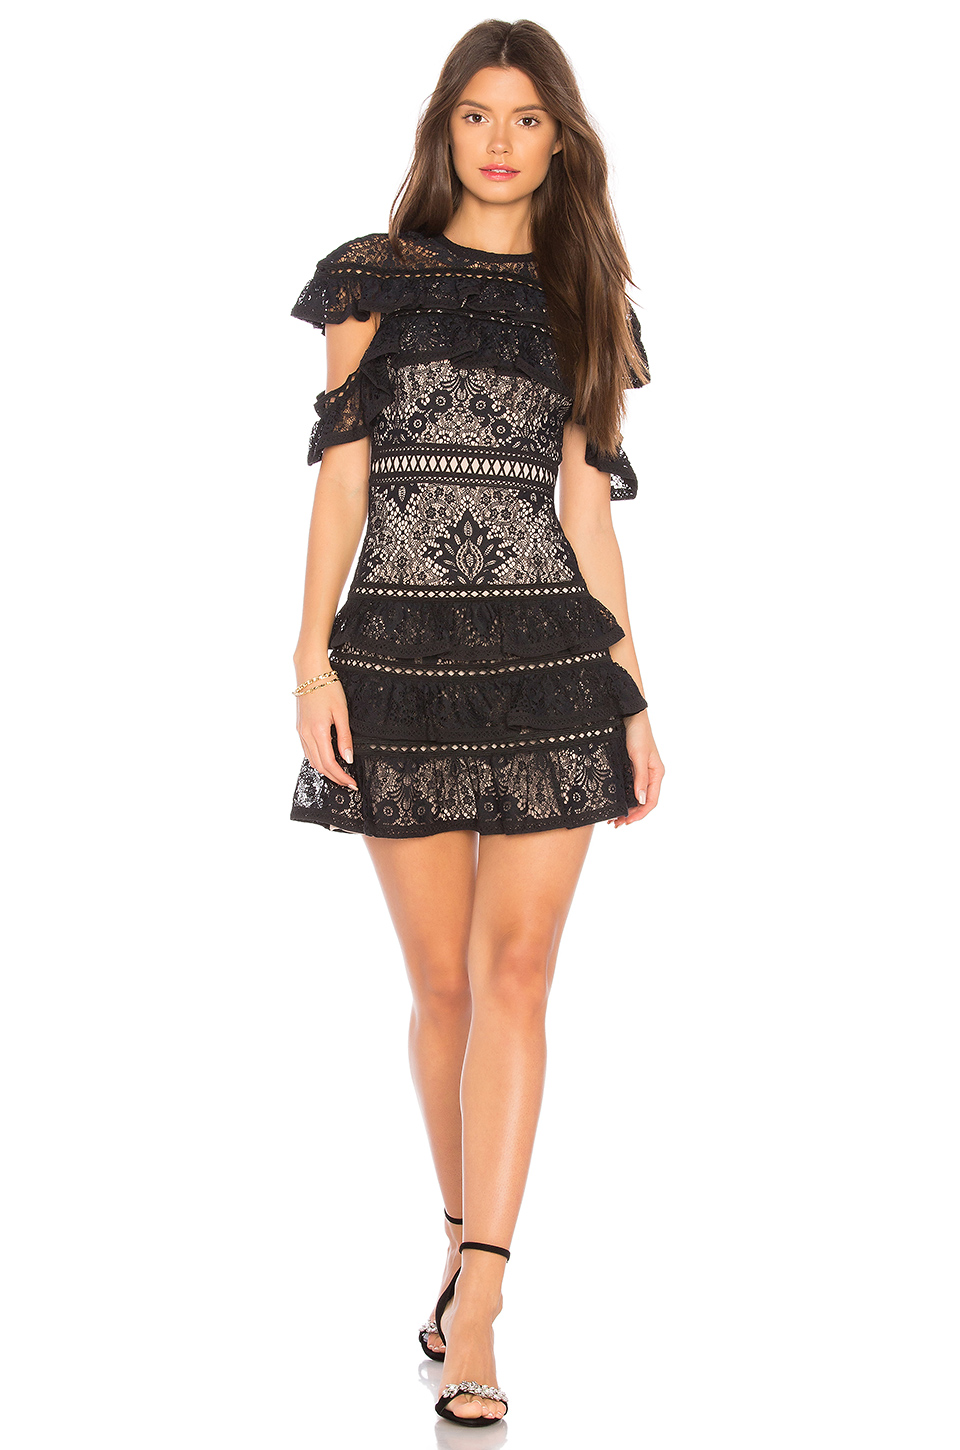 Alice + Olivia Jolie Dress in Black & Nude